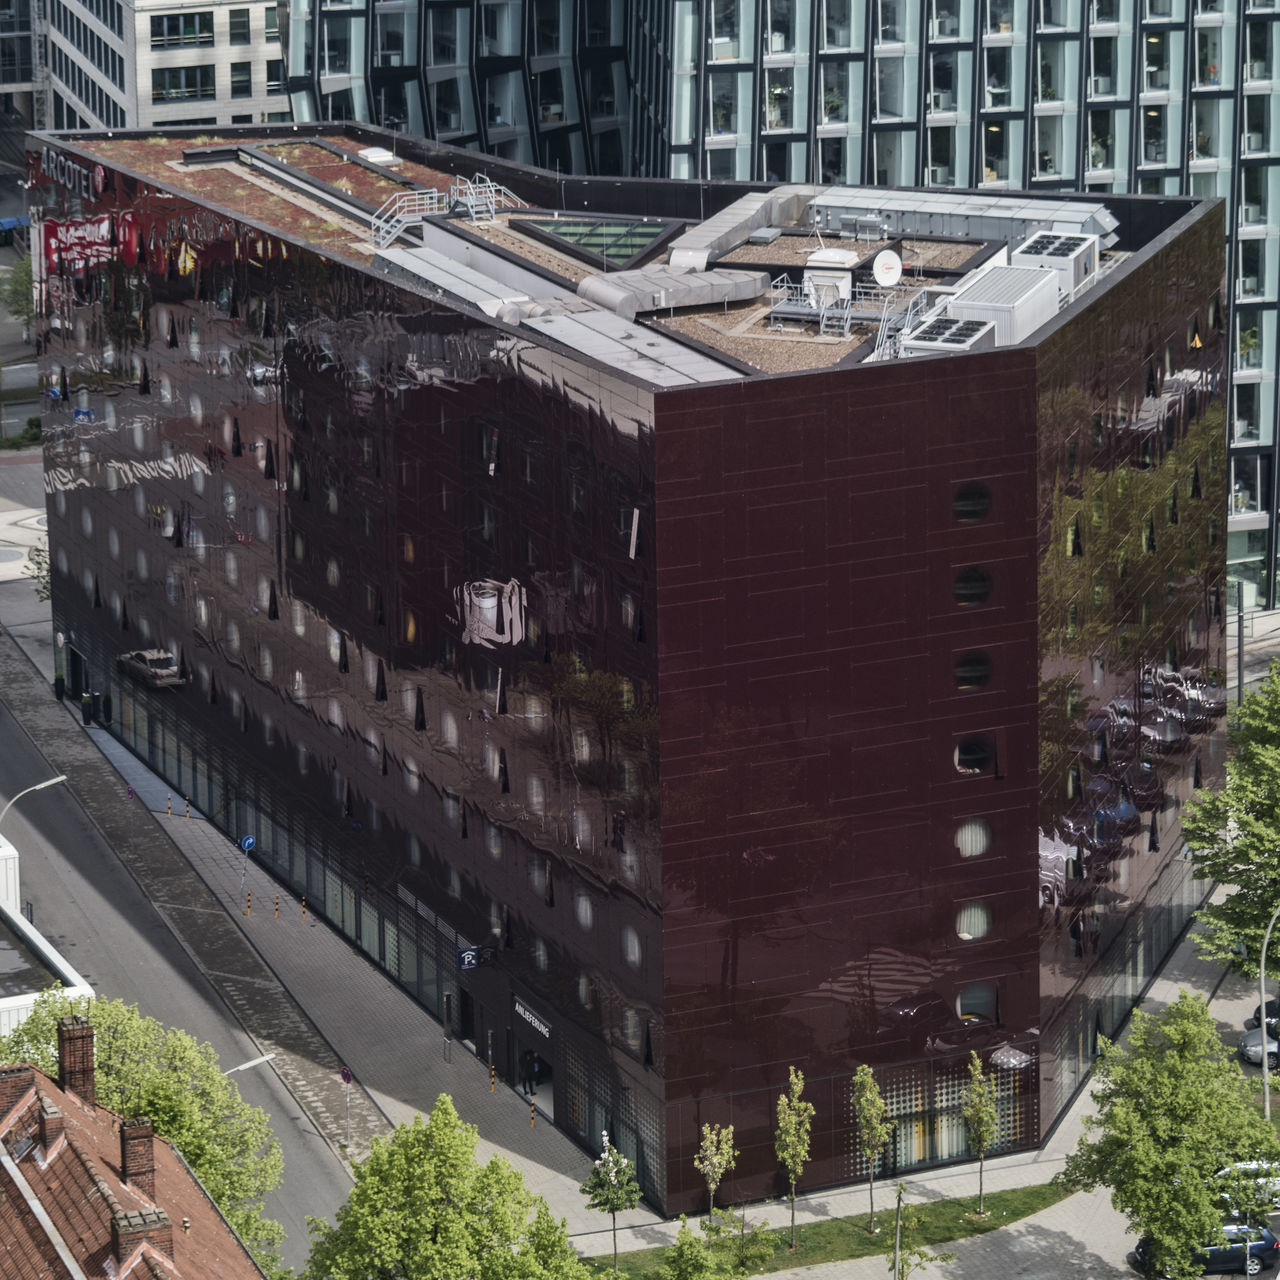 Arcotel Onyx Architecture Arcotel Bird's-eye View Building Exterior Built Structure City Day Daylight Hotel Modern Architecture No People Onyx Outdoors Reeperbahn  Street Trees